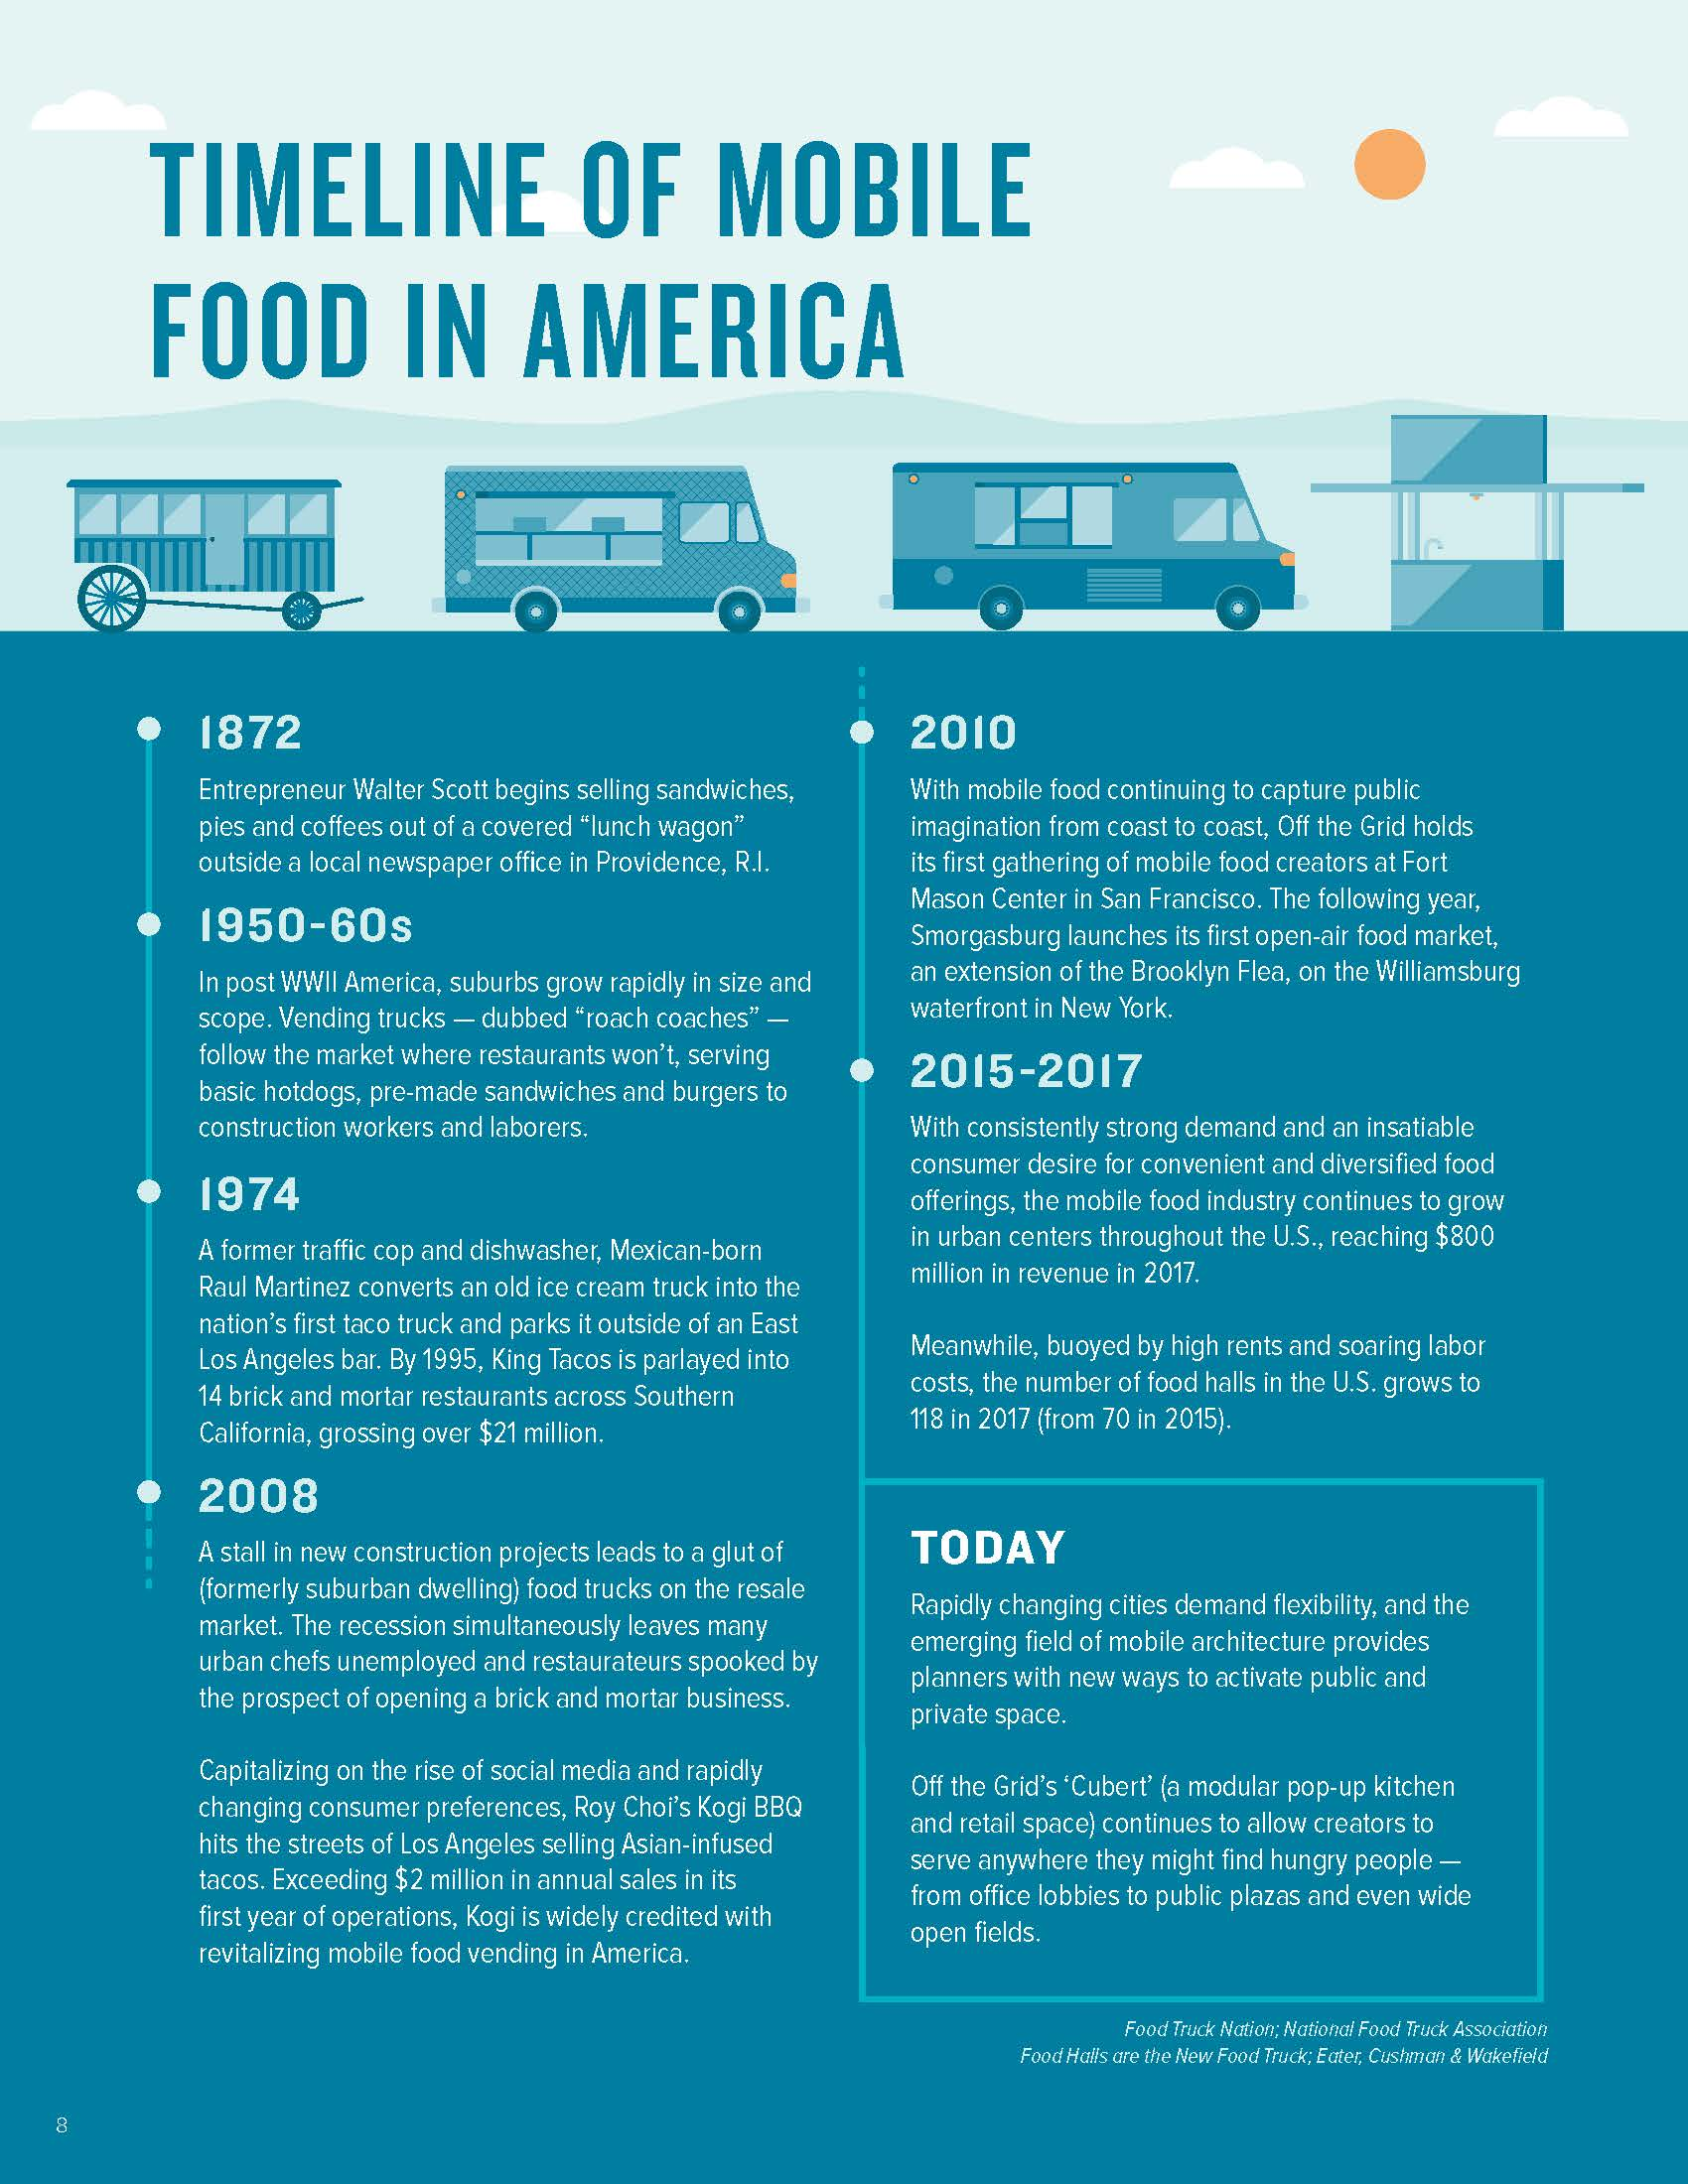 Timeline of Mobile Food in America